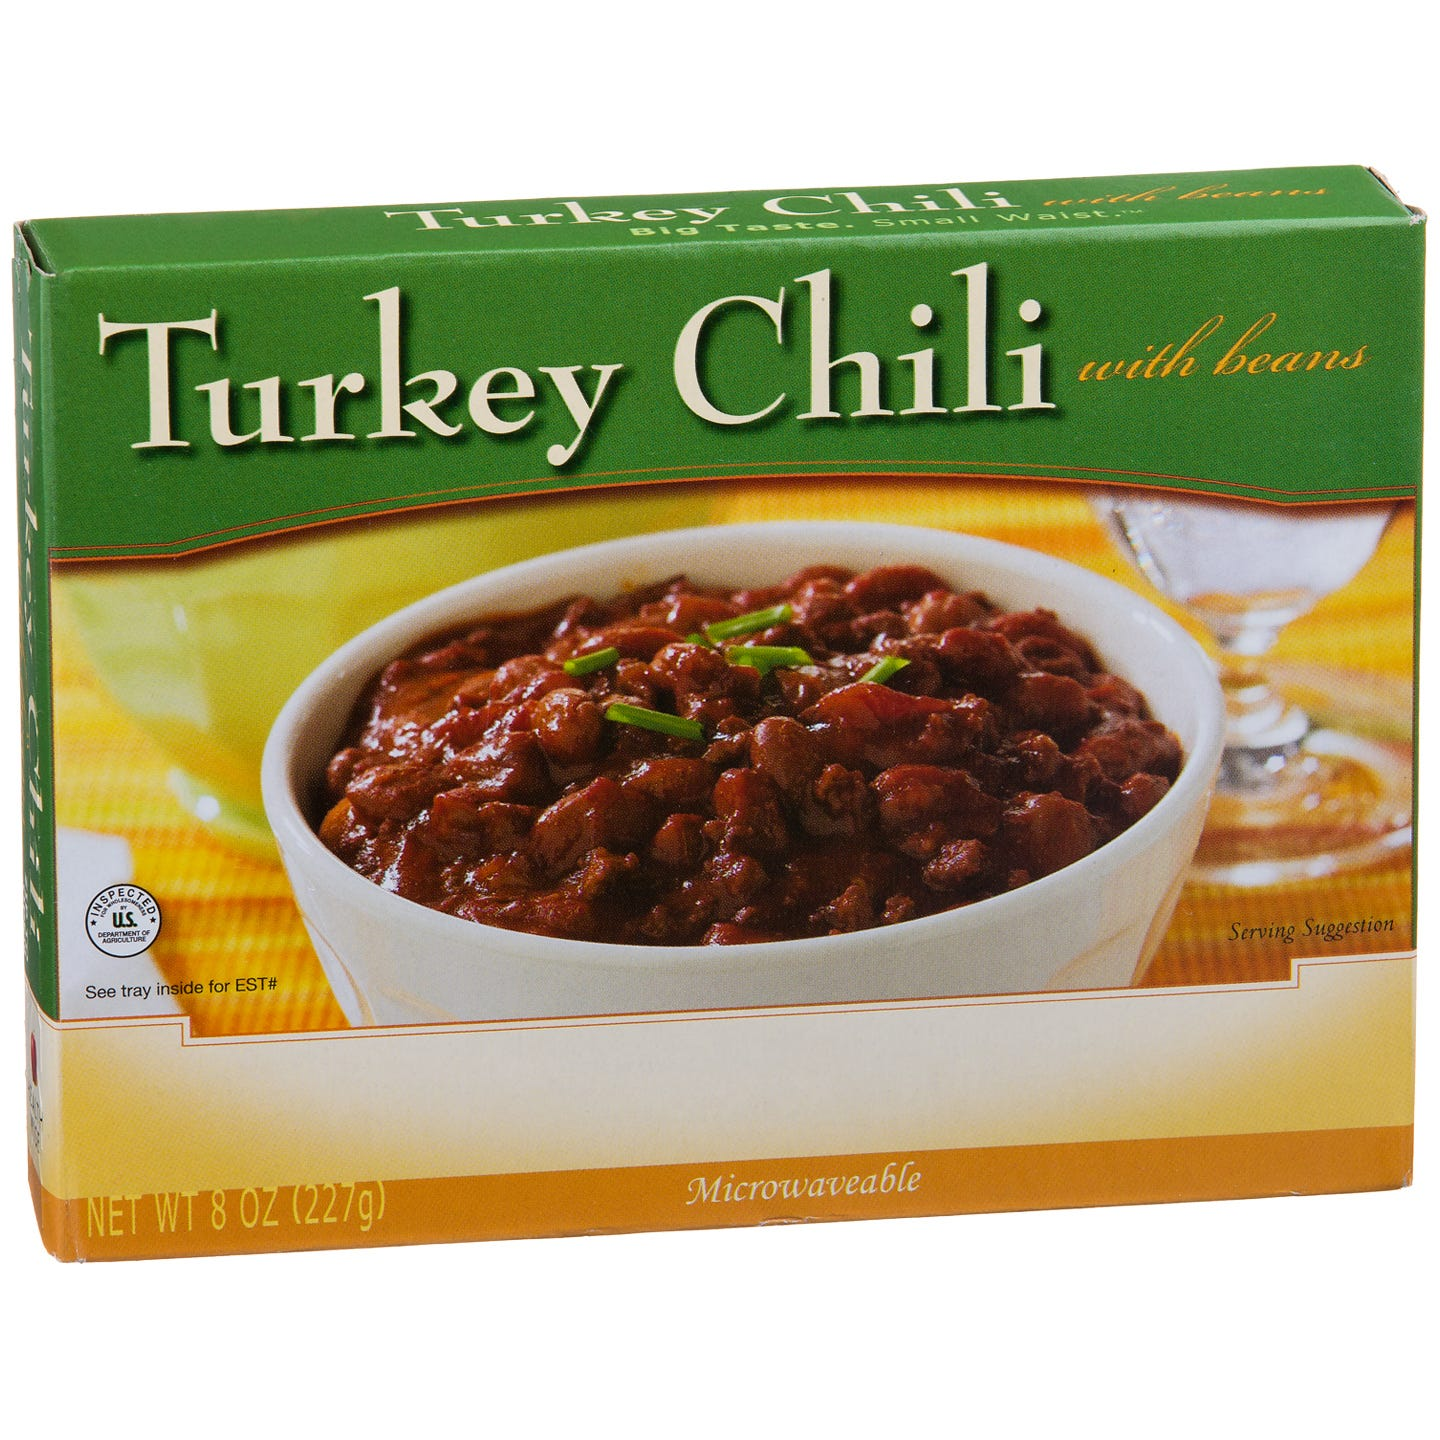 BariWise Low Calorie Meals, Turkey Chili with Beans